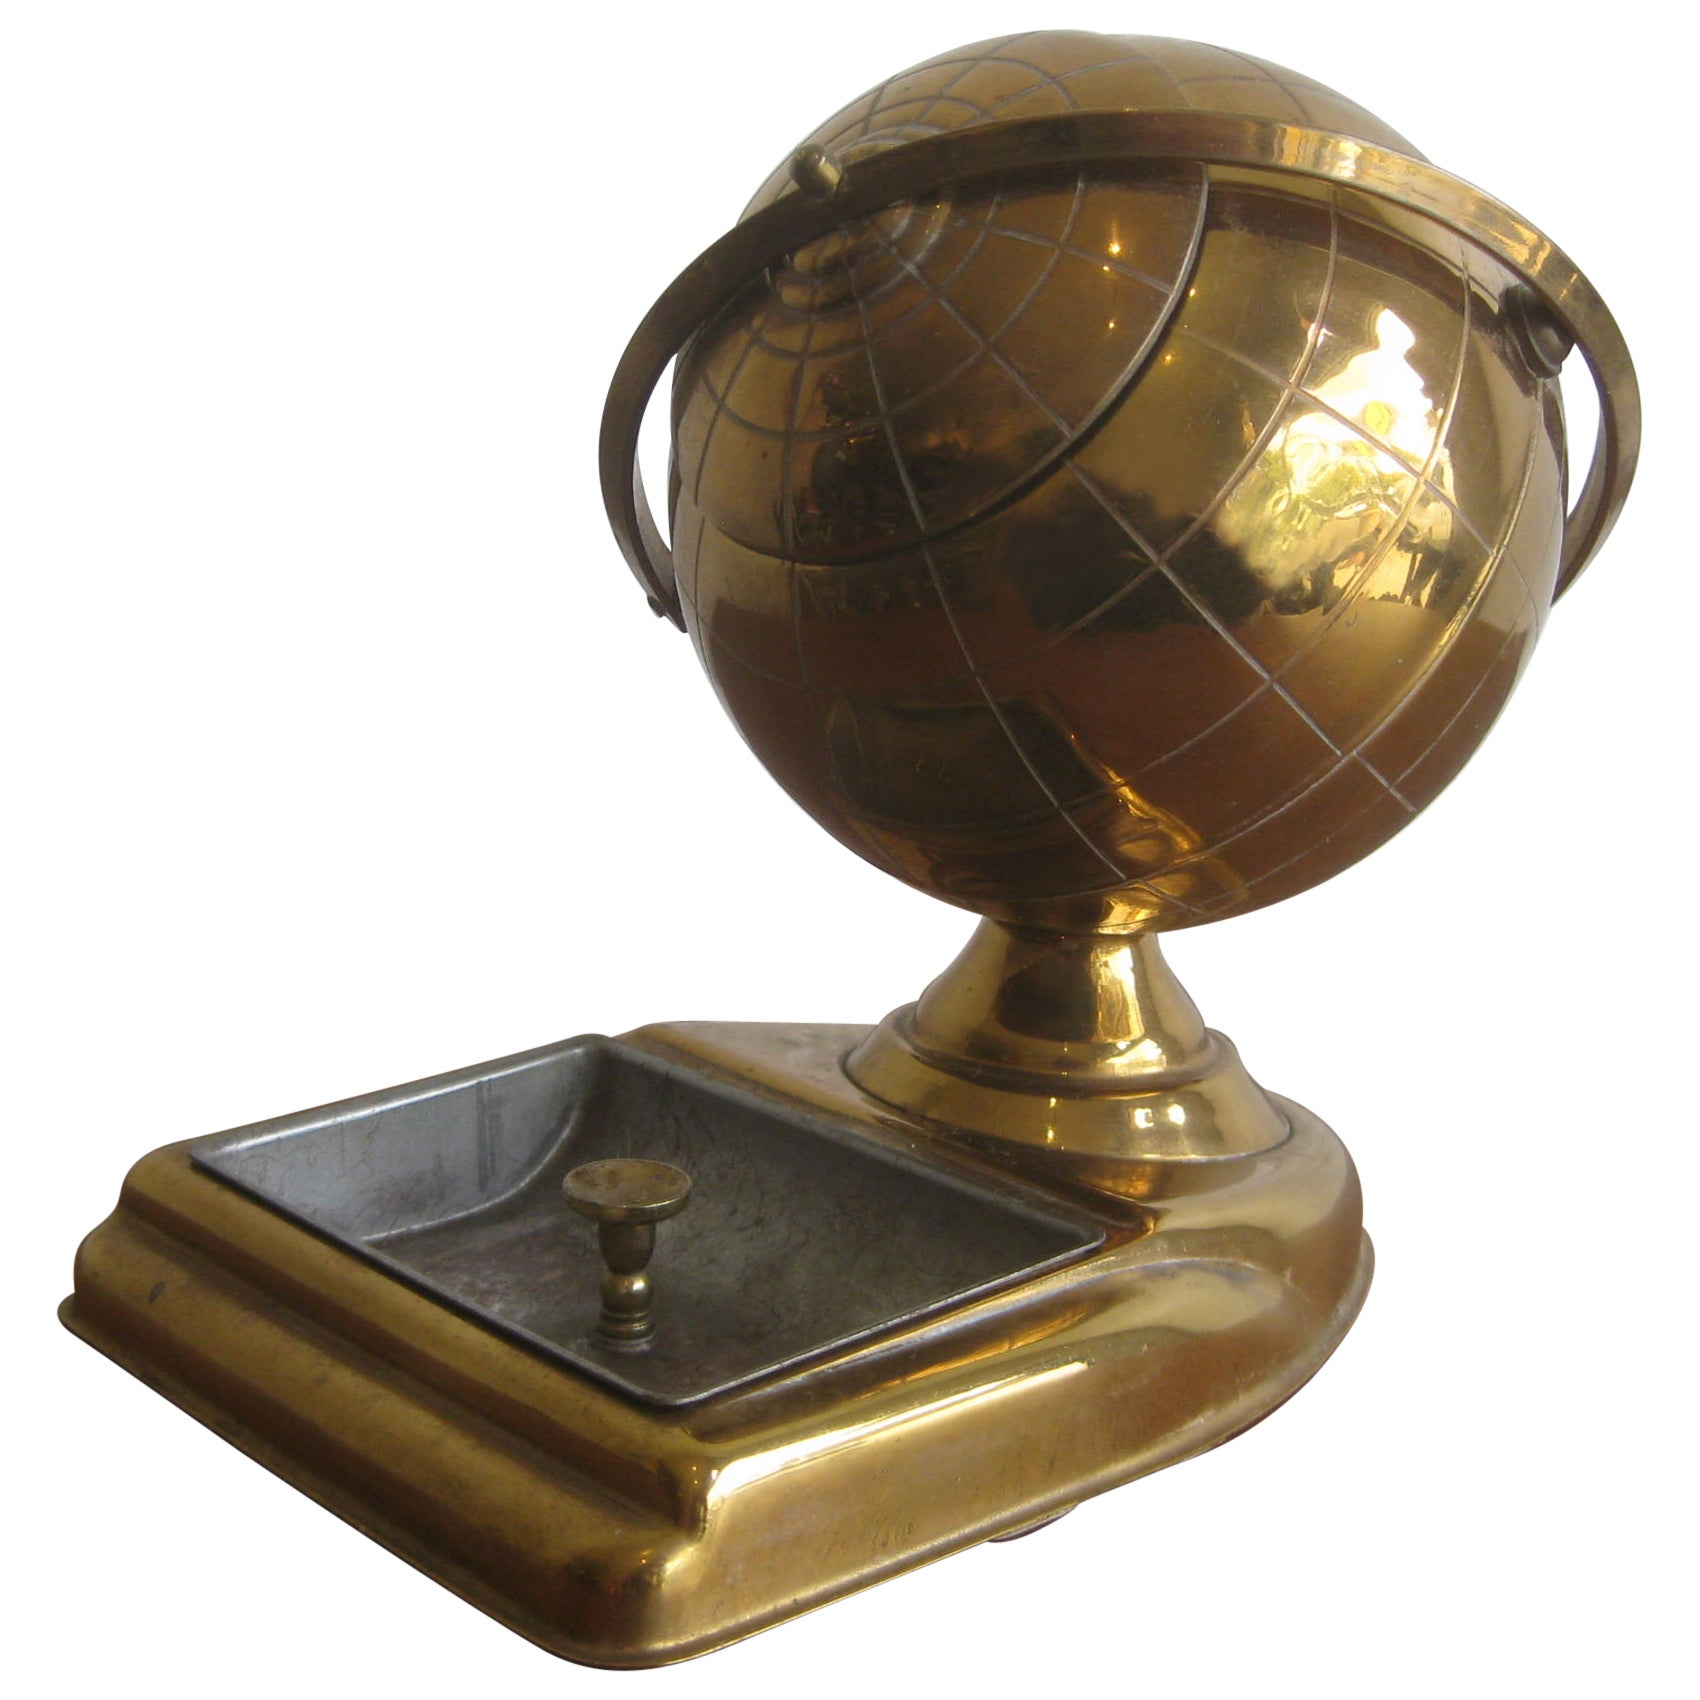 Midcentury Brass Globe Cigarette Holder & Ashtray Office Desk Accessory Caddy